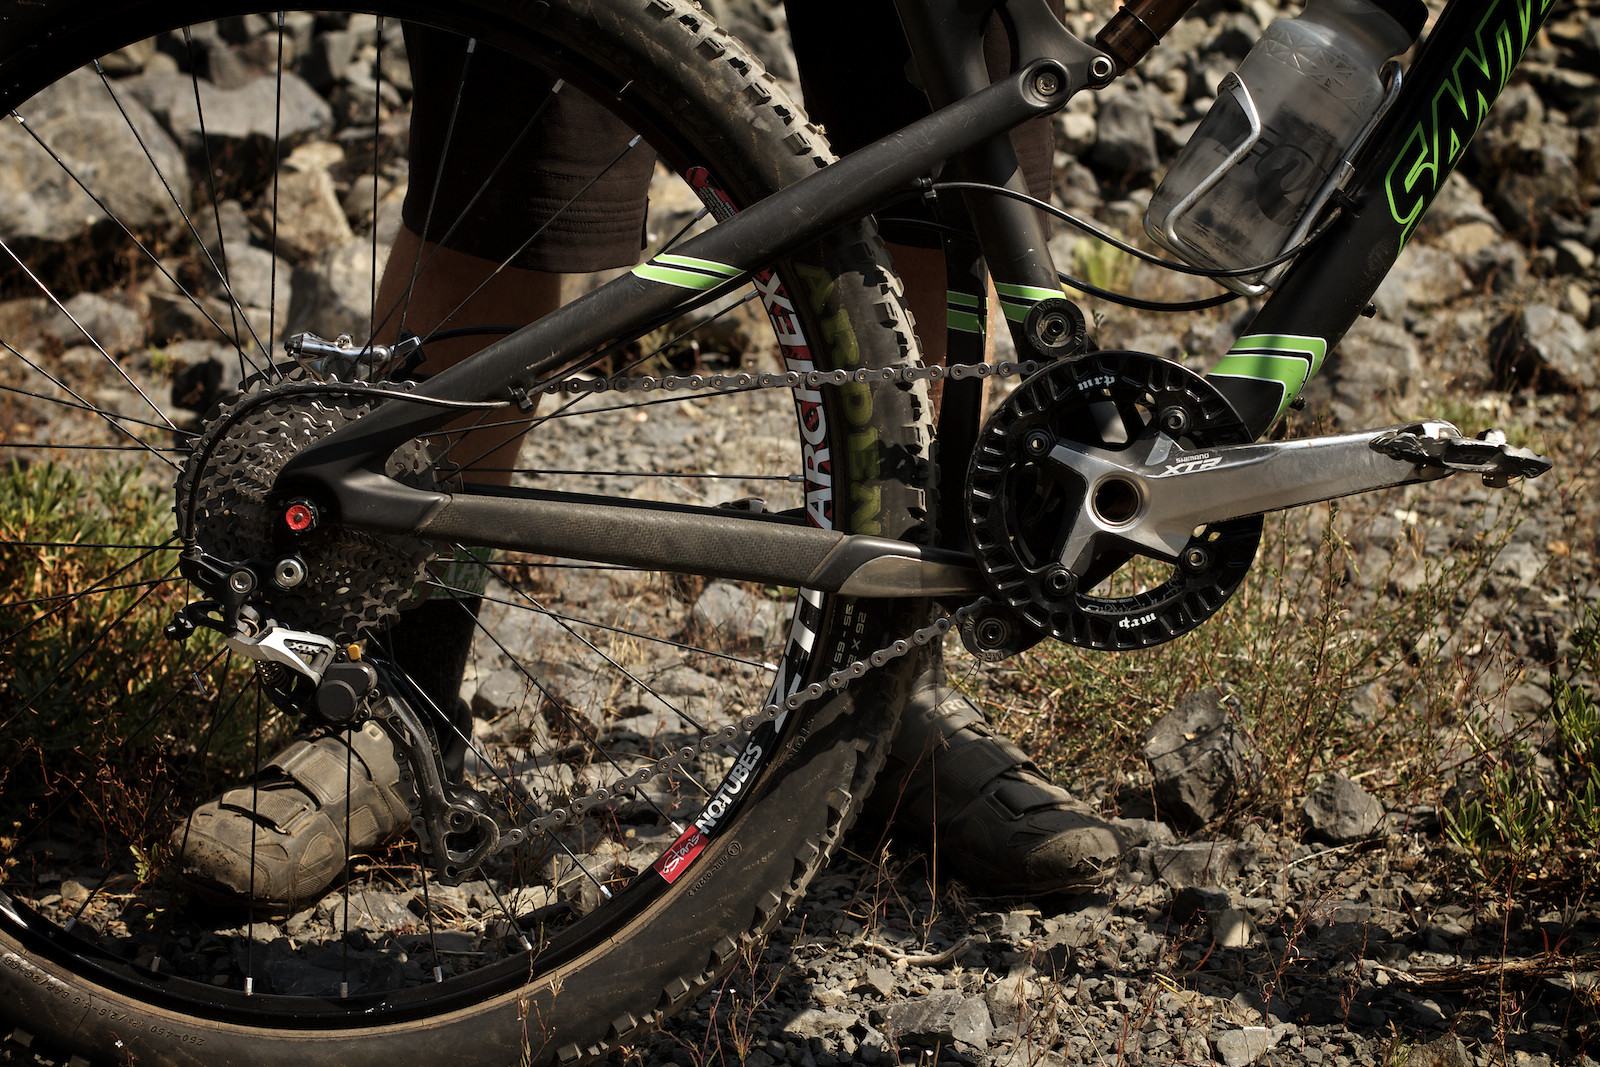 Chris Johnston's Blur TRc Drivetrain - corytepper.com - Mountain Biking Pictures - Vital MTB